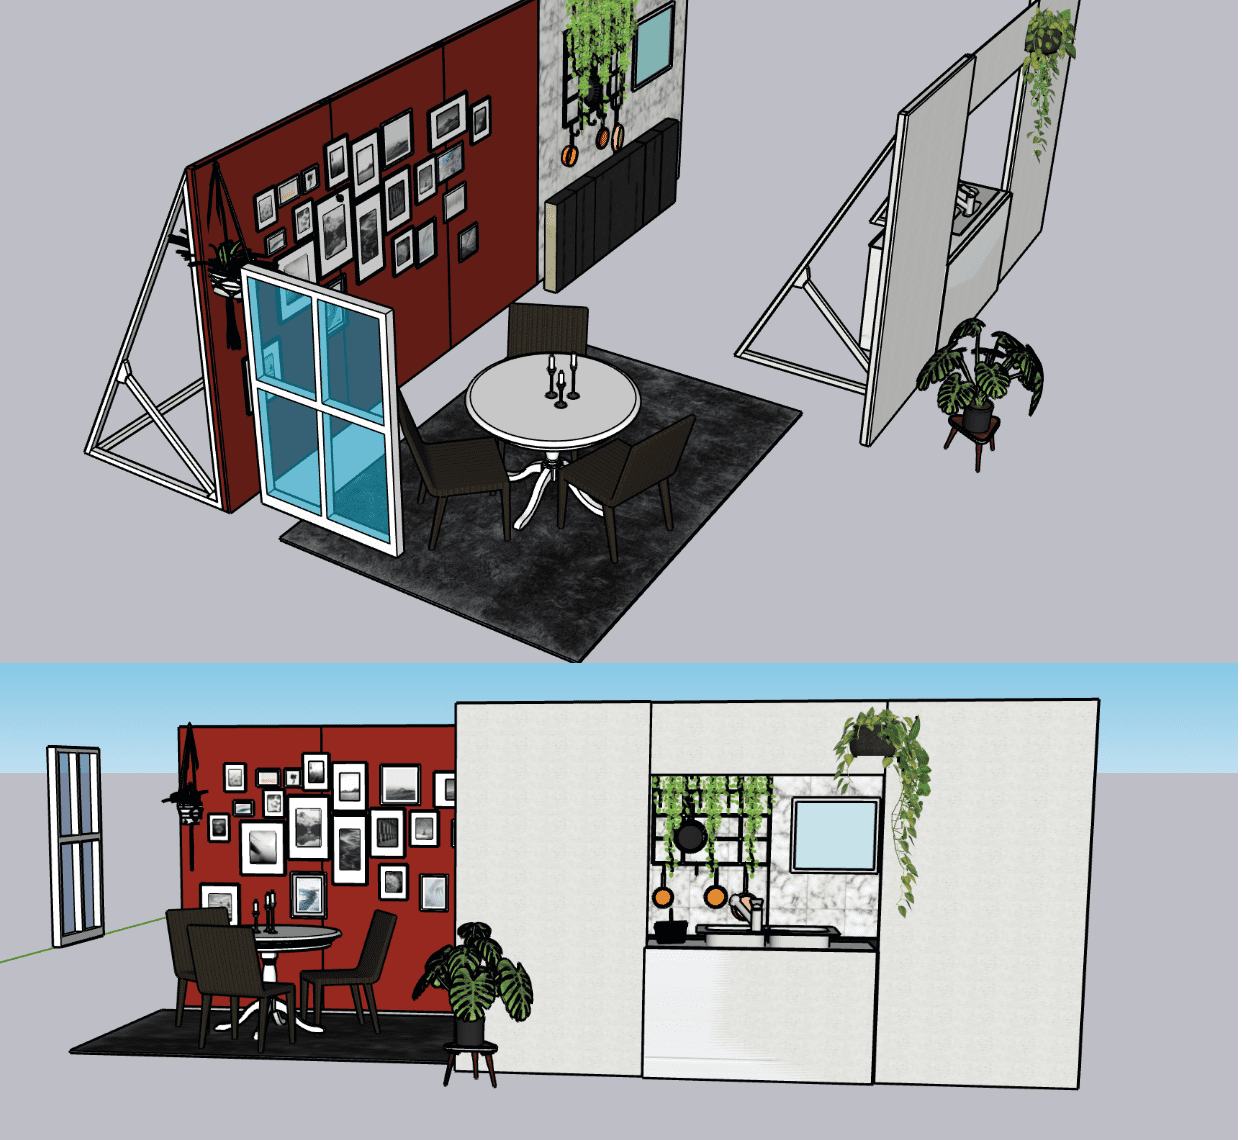 This is a set design I made in sketchup. Designing for emotion, showing how colour and shapes work together to portray emotions